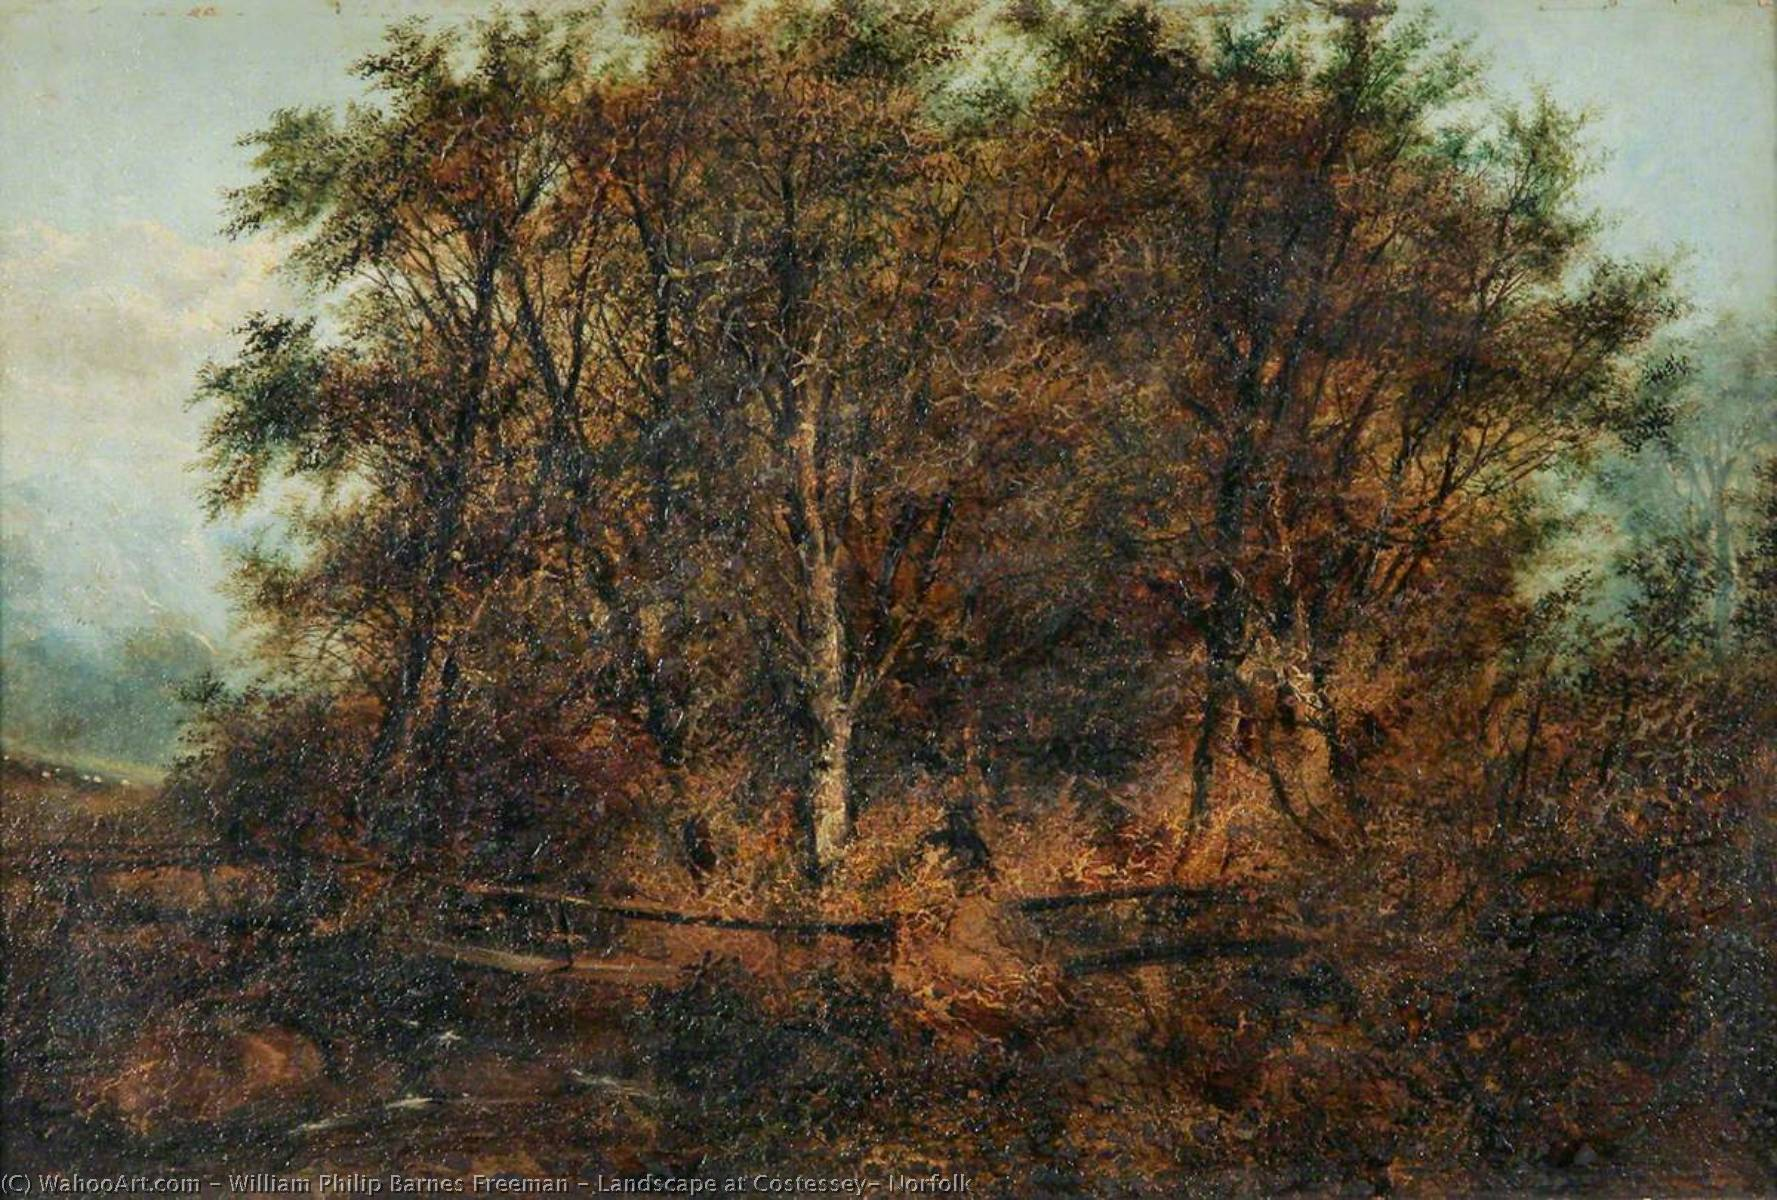 Landscape at Costessey, Norfolk by William Philip Barnes Freeman | WahooArt.com